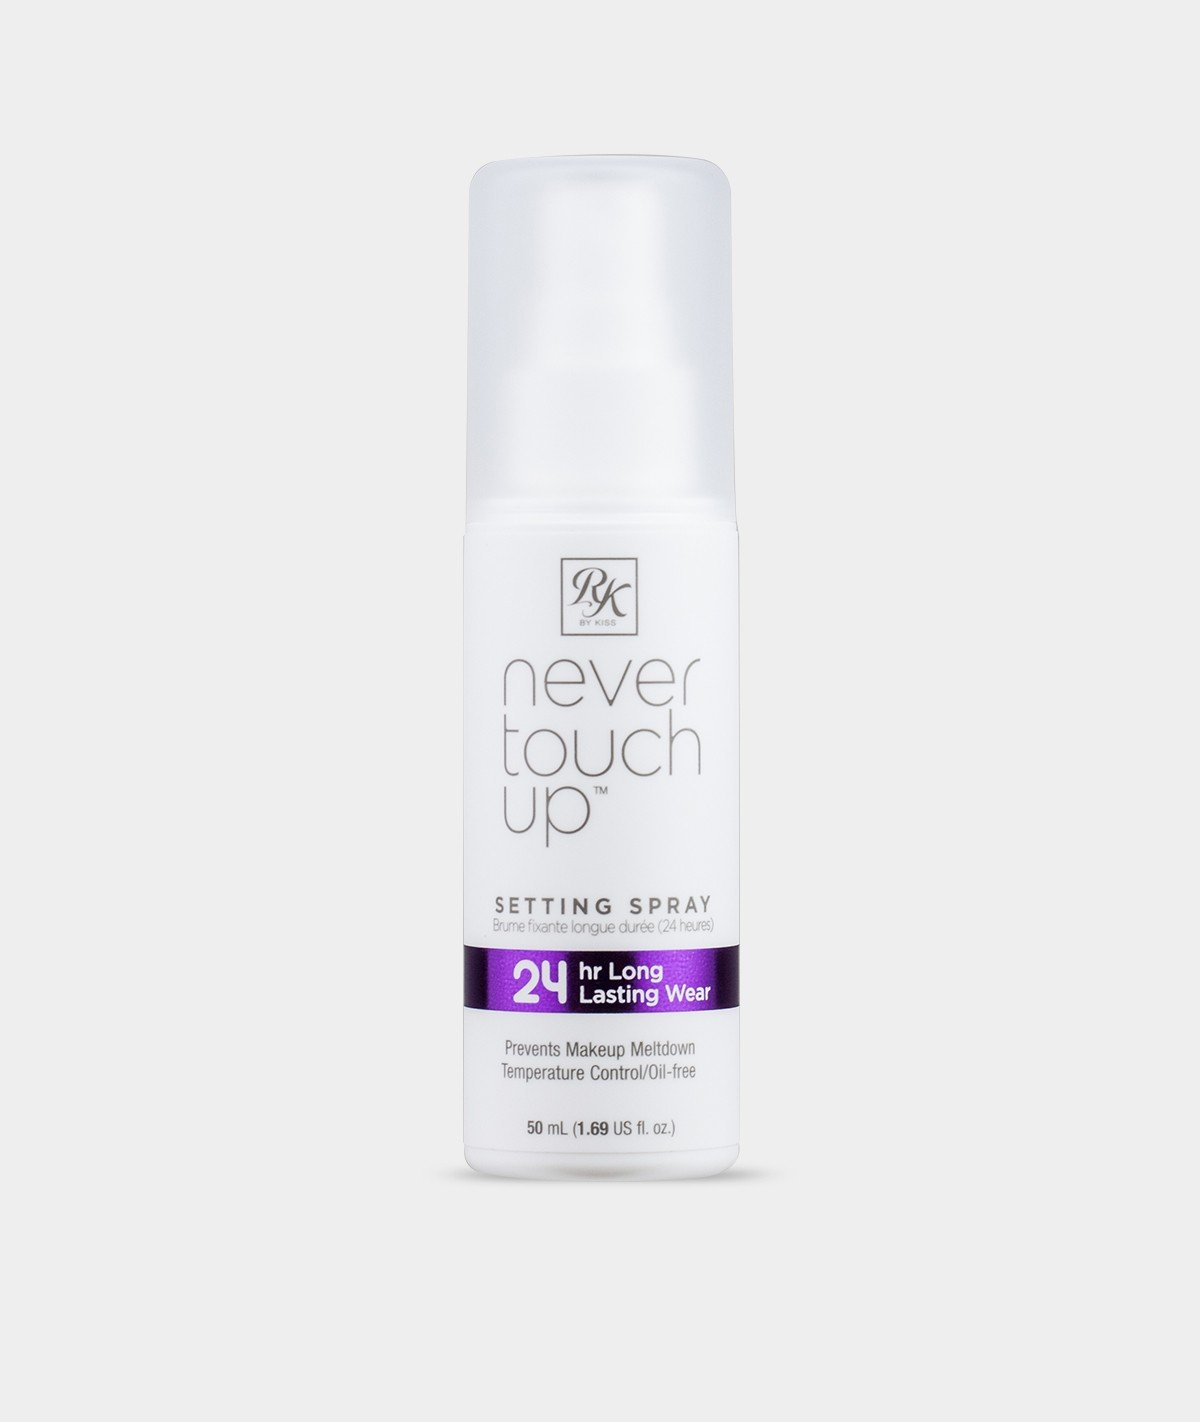 RK BY KISS NEVER TOUCH UP SETTING SPRAY